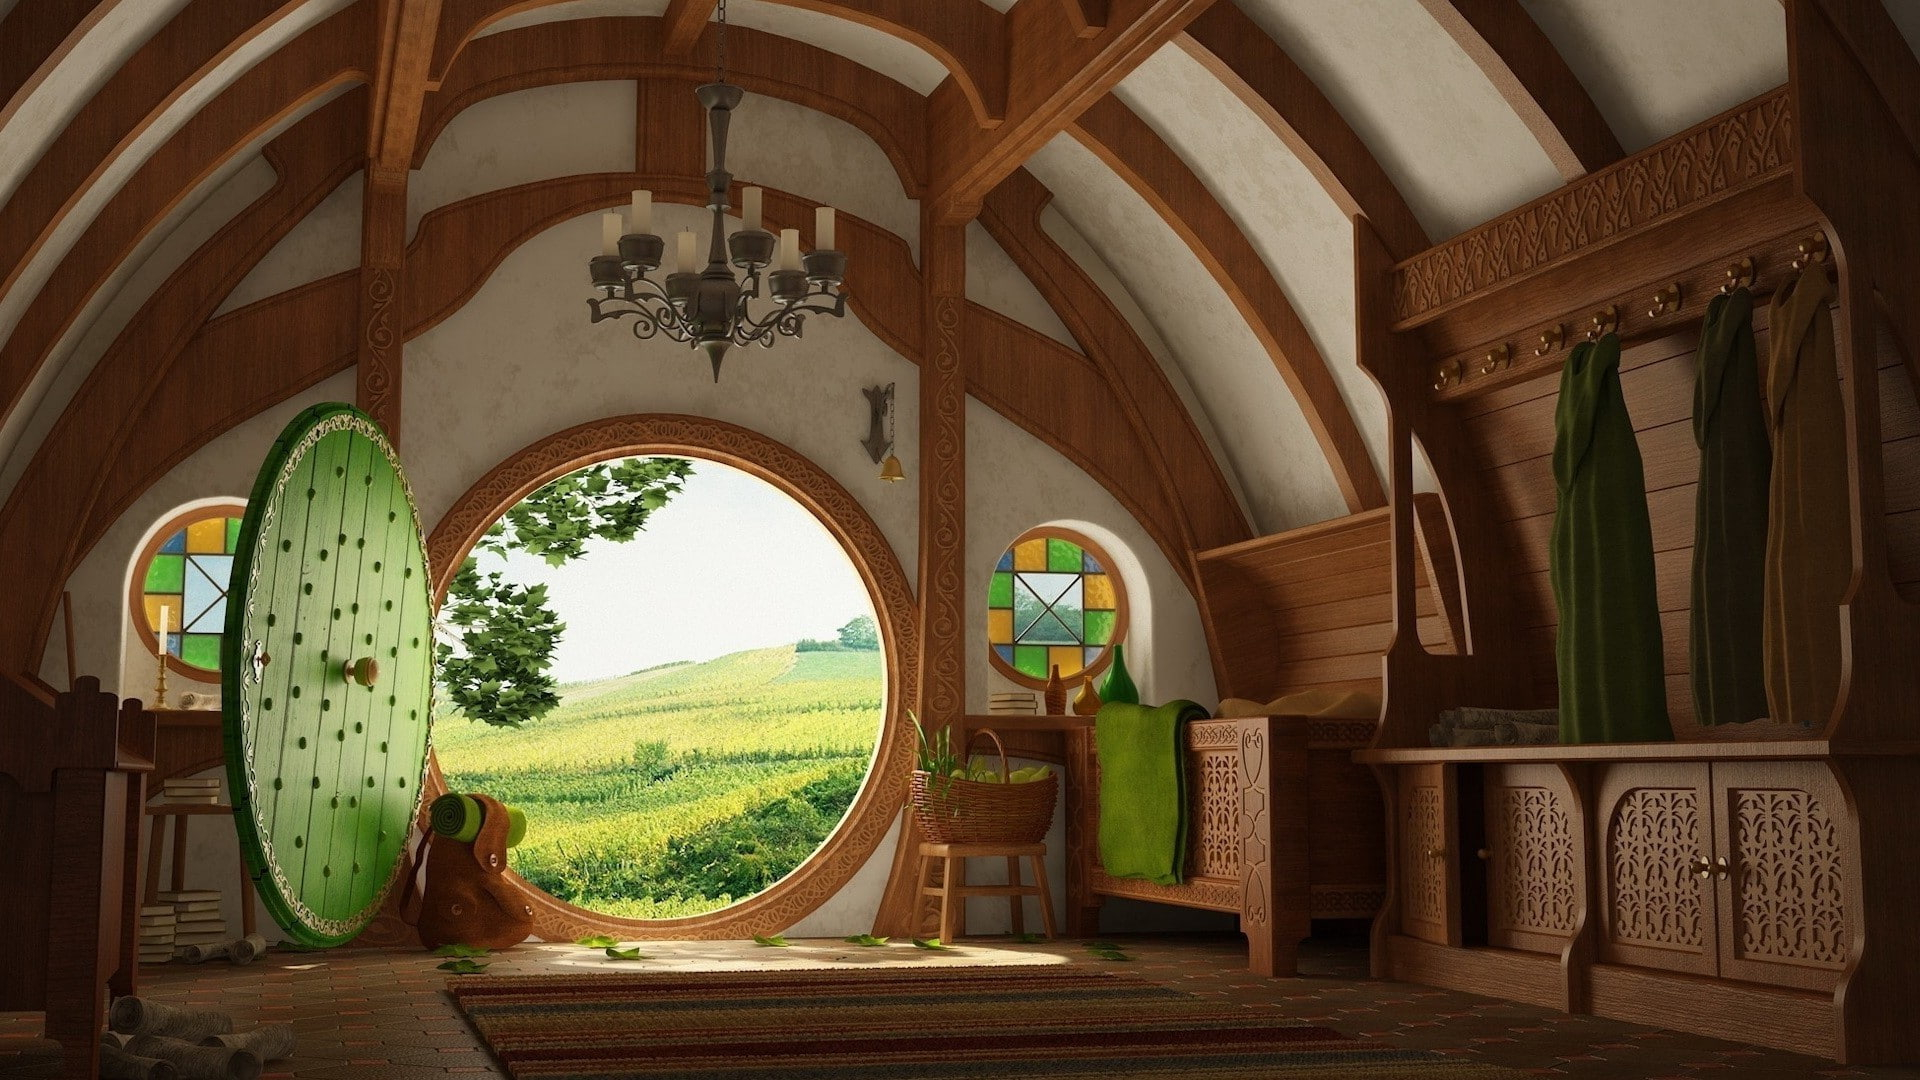 The Lord of the Rings hobbit house entrance. Virtual background to use on Zoom, Microsoft Teams, Skype, Google Meet, WebEx or any other compatible app.